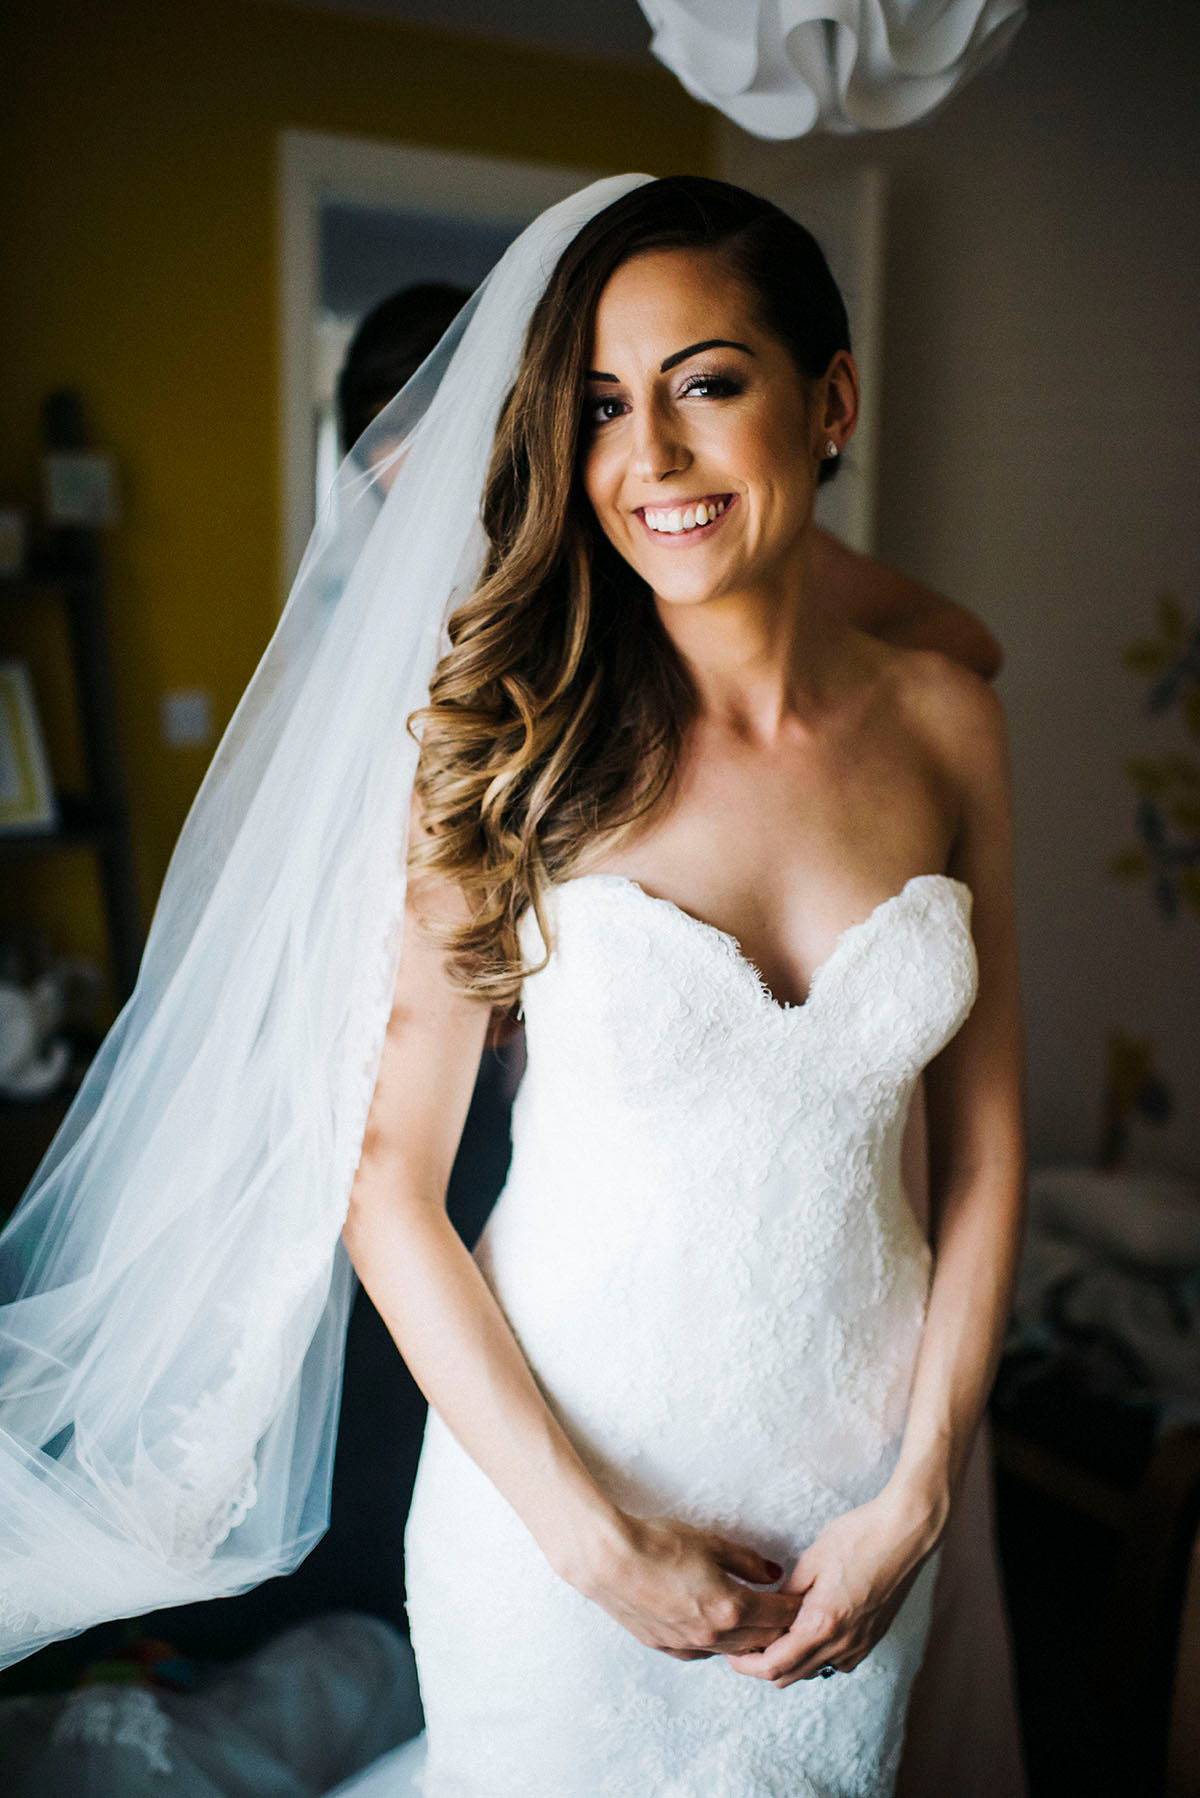 Enzoani Elegance and a Chapel Length Veil for a Romantic Country Manor Wedding (Films Weddings )